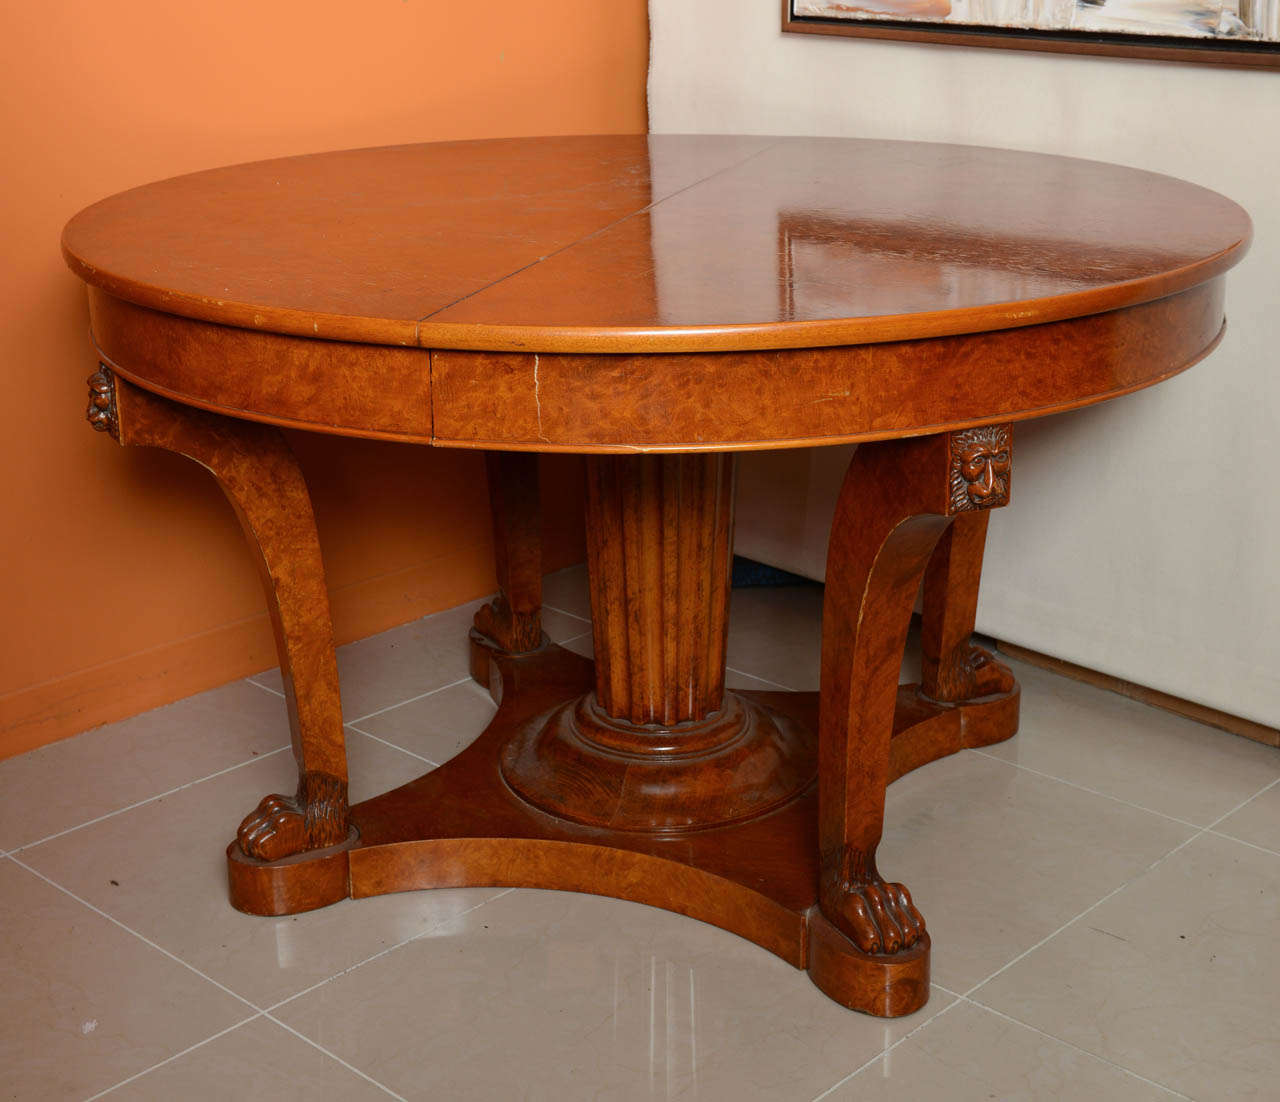 French Empire Revival Burled Walnut and Walnut Extension Dining Table In Excellent Condition For Sale In Miami, FL